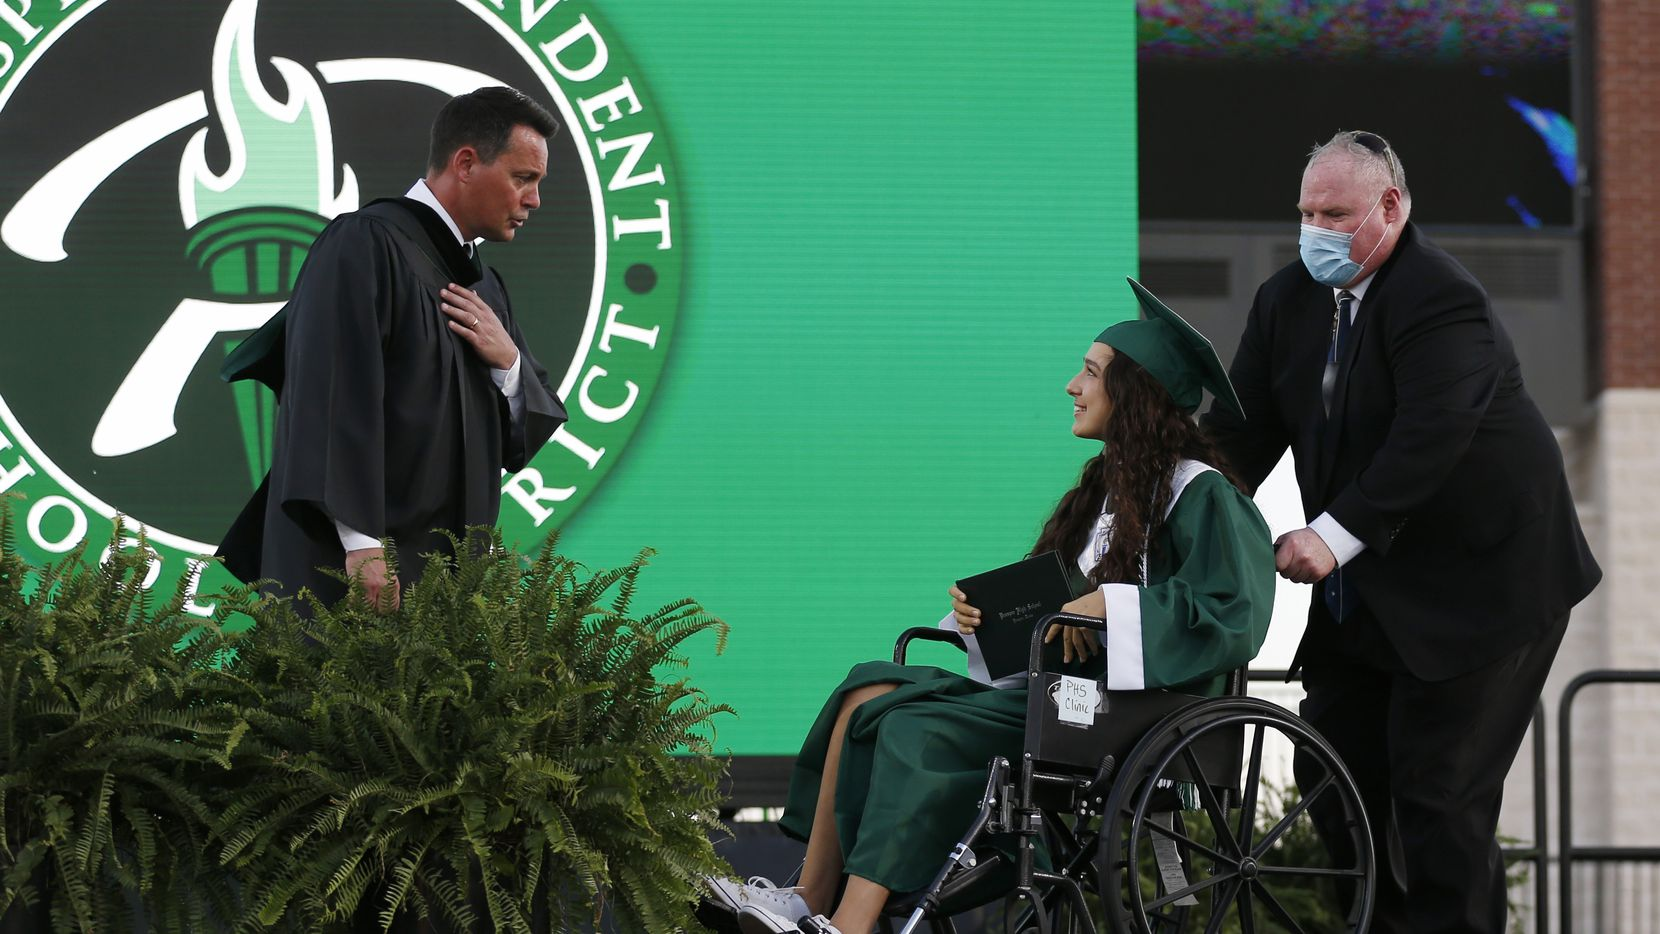 Prosper High School principal, Dr. John M. Burdett talks to Prosper High School softball player Lexie Bell as she is pushed on the stage by Prosper softball coach Todd Rainwater after she received her diploma during Prosper High School's graduation ceremony at Children's Health Stadium in Prosper, Texas on Friday, June 5, 2020. Bell signed to play softball at St. Edward's University. But she was recently diagnosed with Ewing Sarcoma, a rare form of cancer.